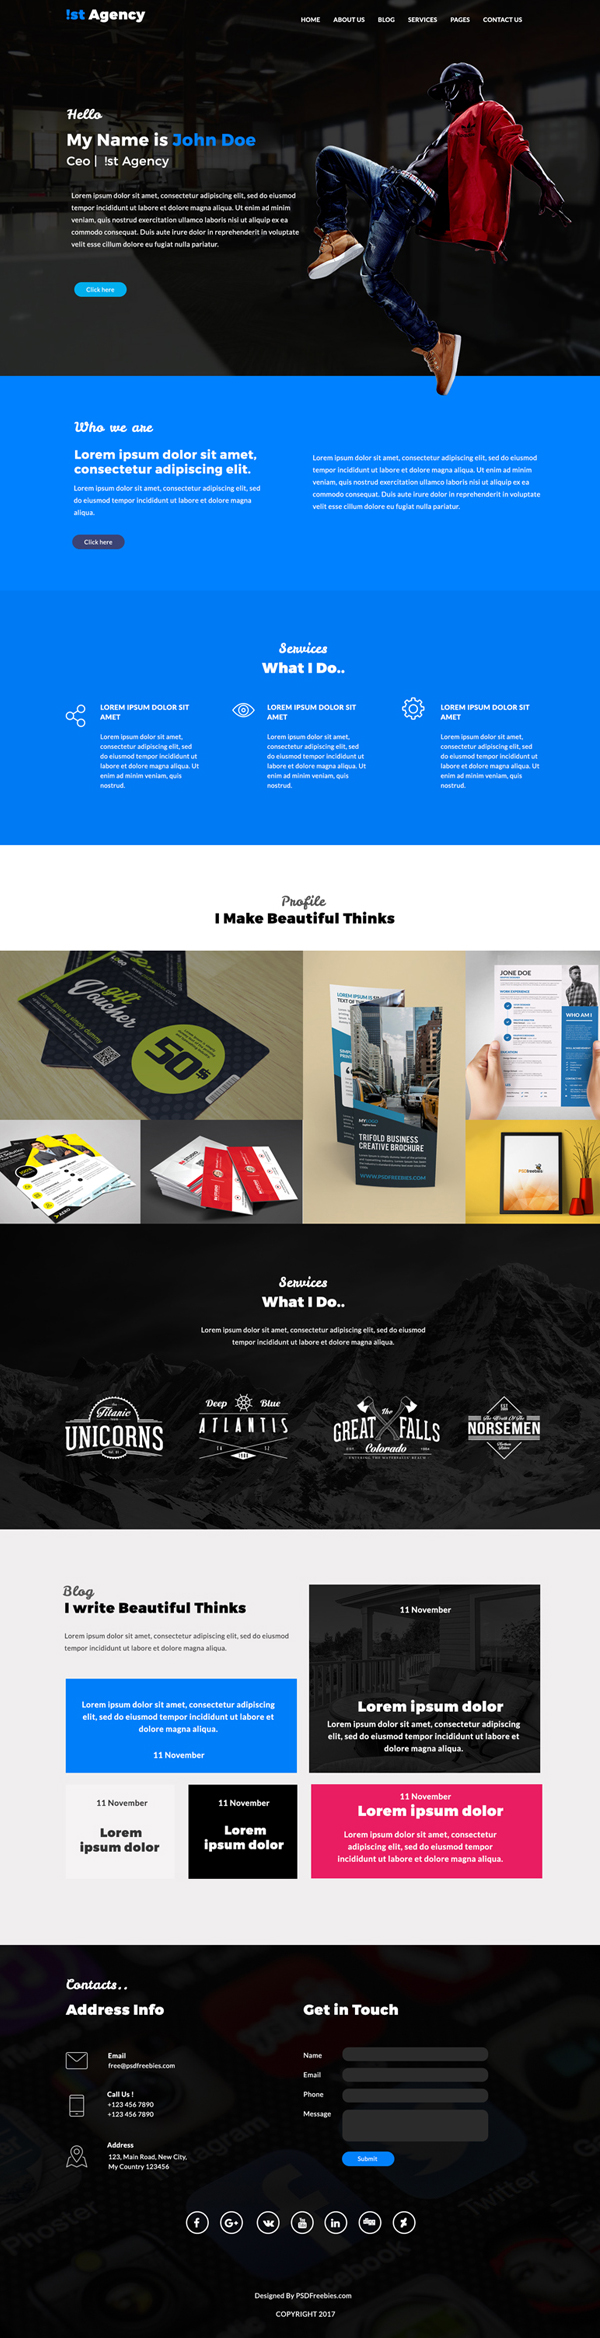 Web Templates 25 Professional Free Psd Templates Freebies